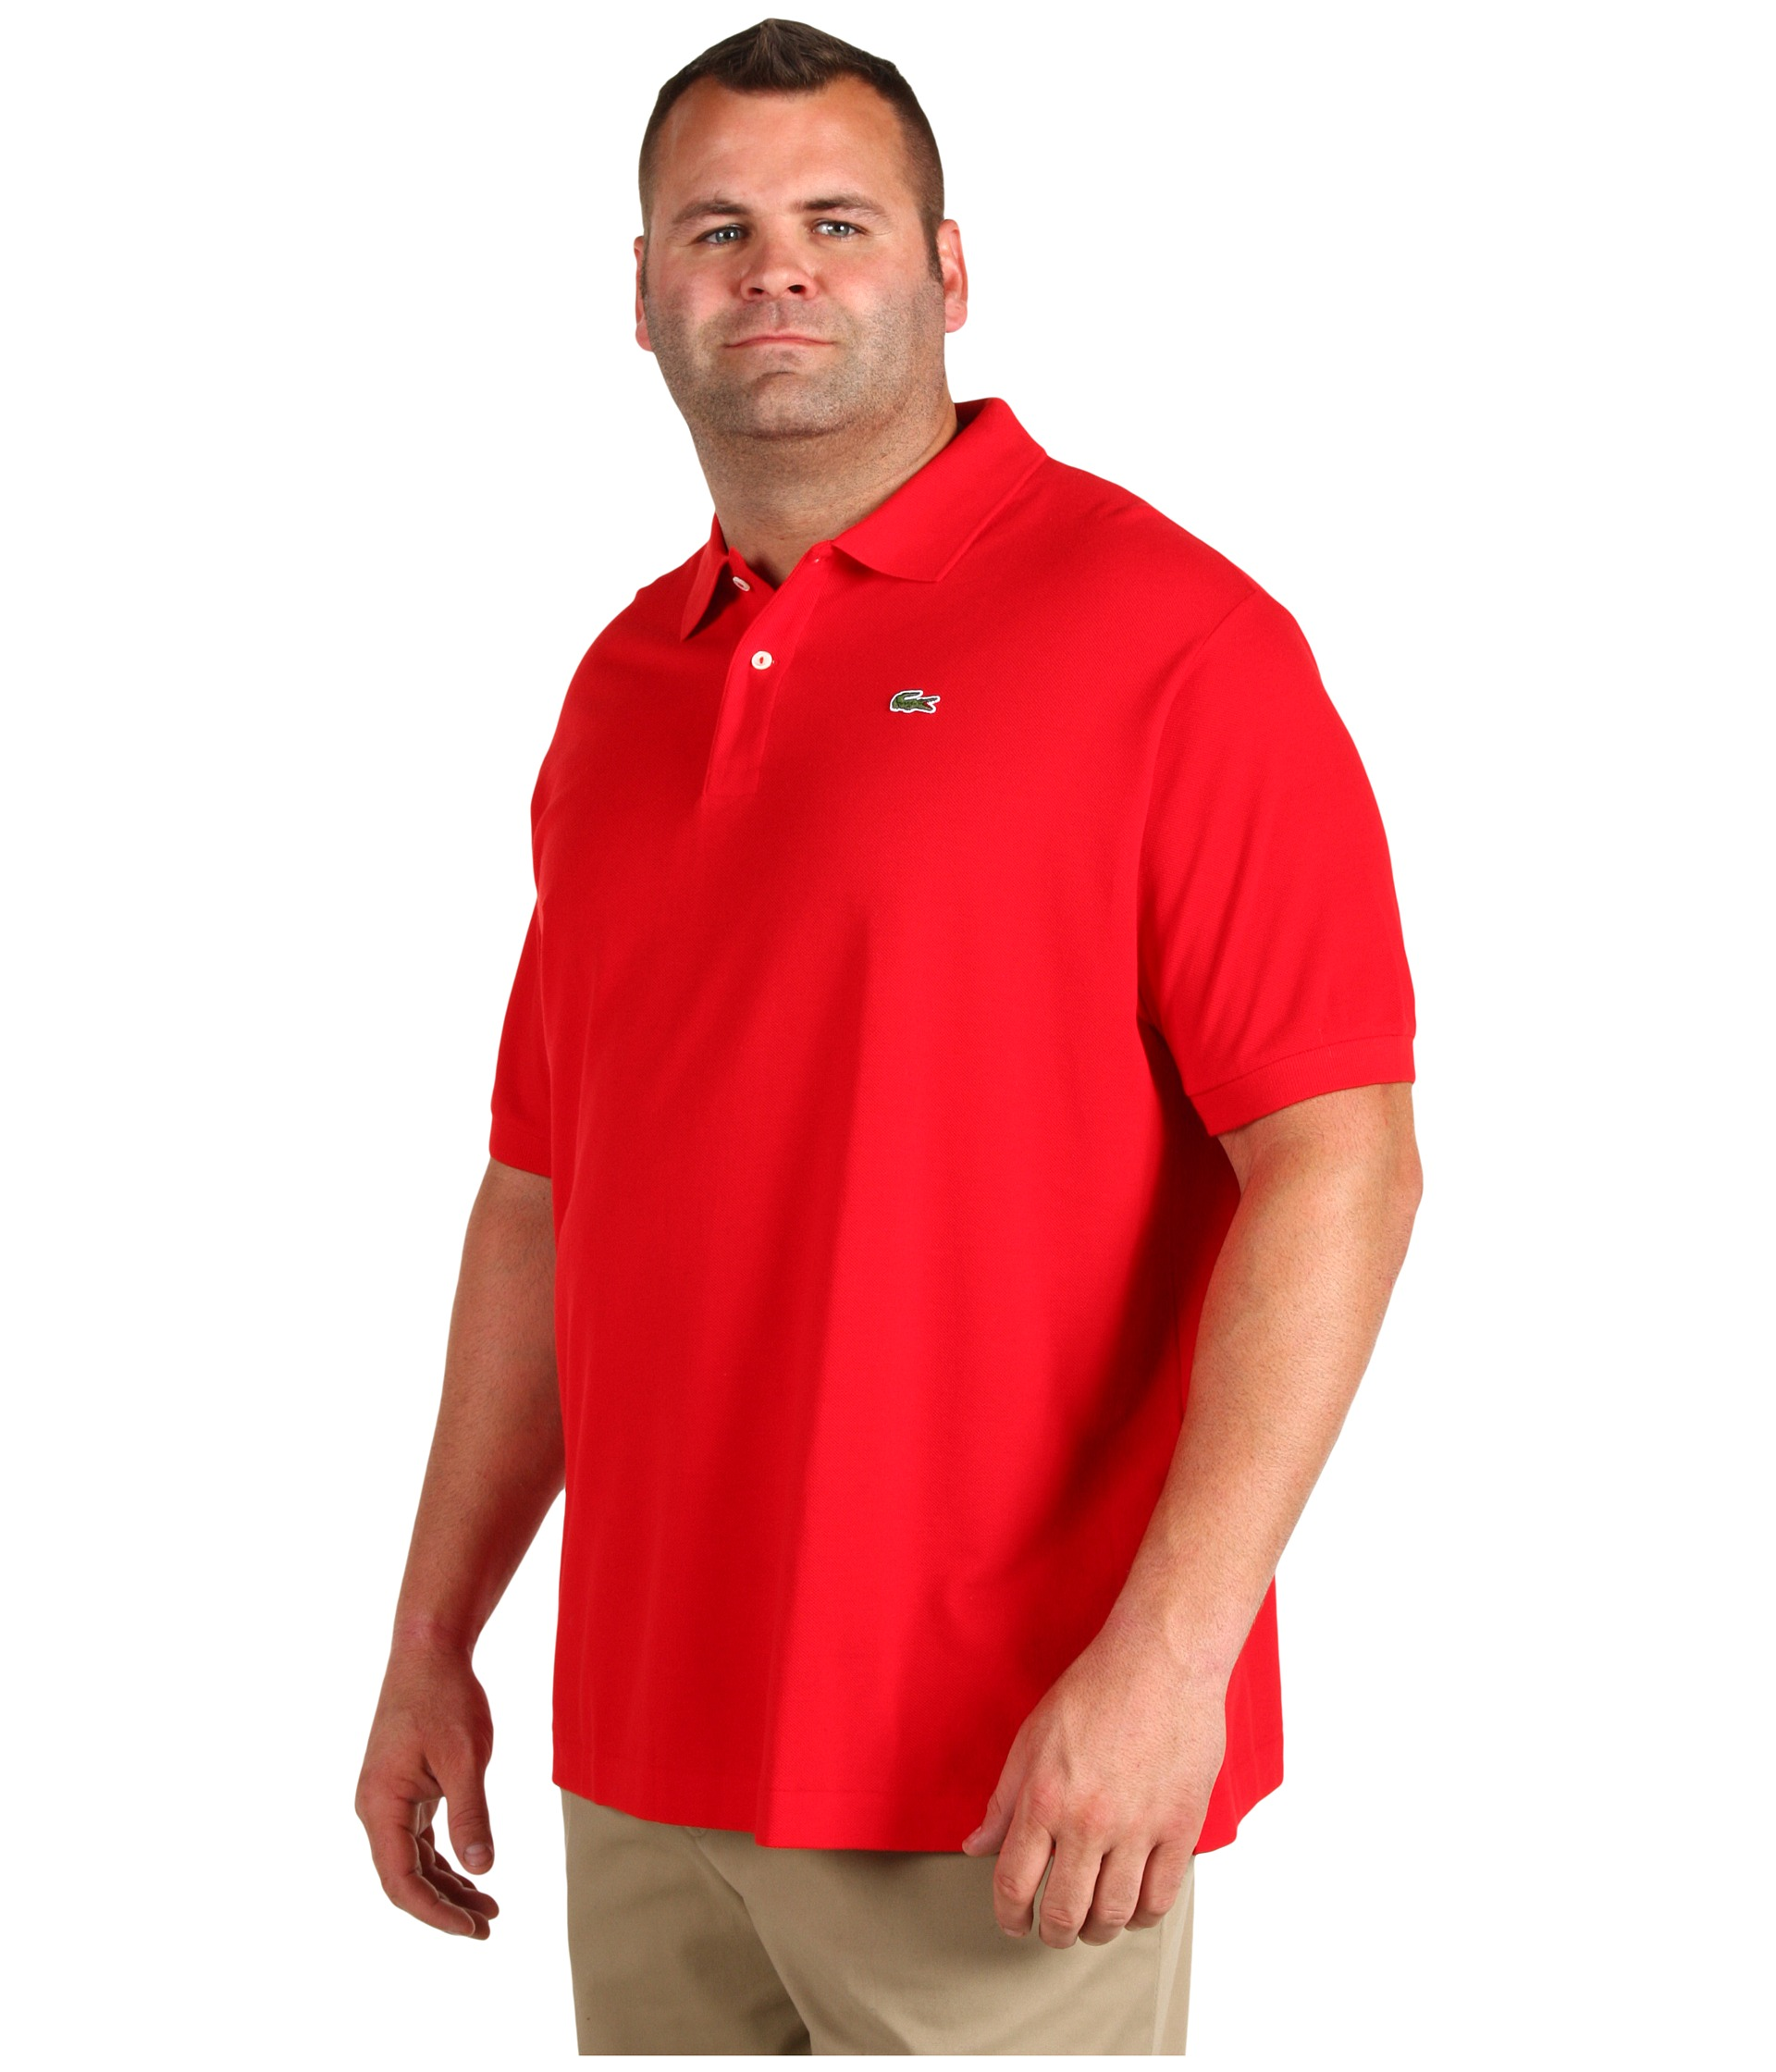 Lacoste tall s s classic pique polo free for Lacoste big and tall polo shirts